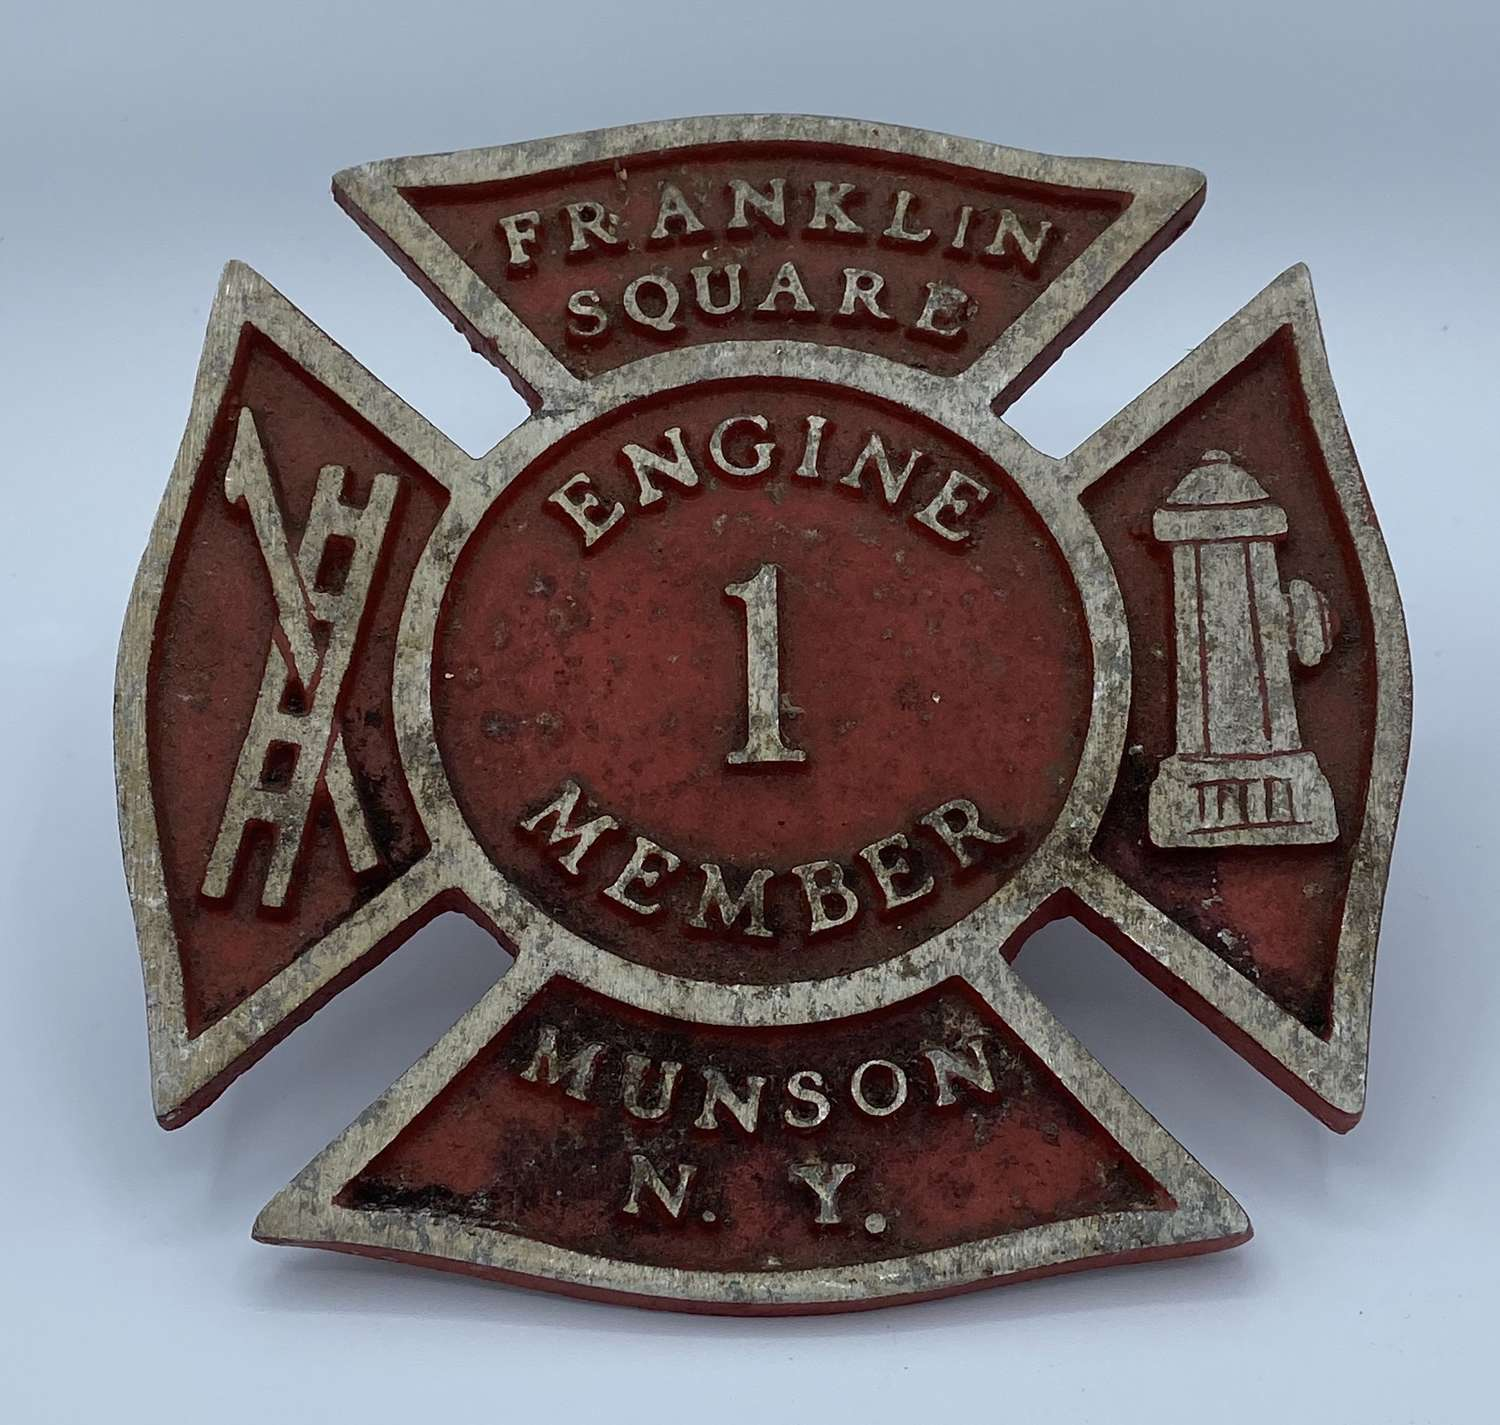 1940s Franklyn Square Engine 1 Member Munson NYFD Plaque